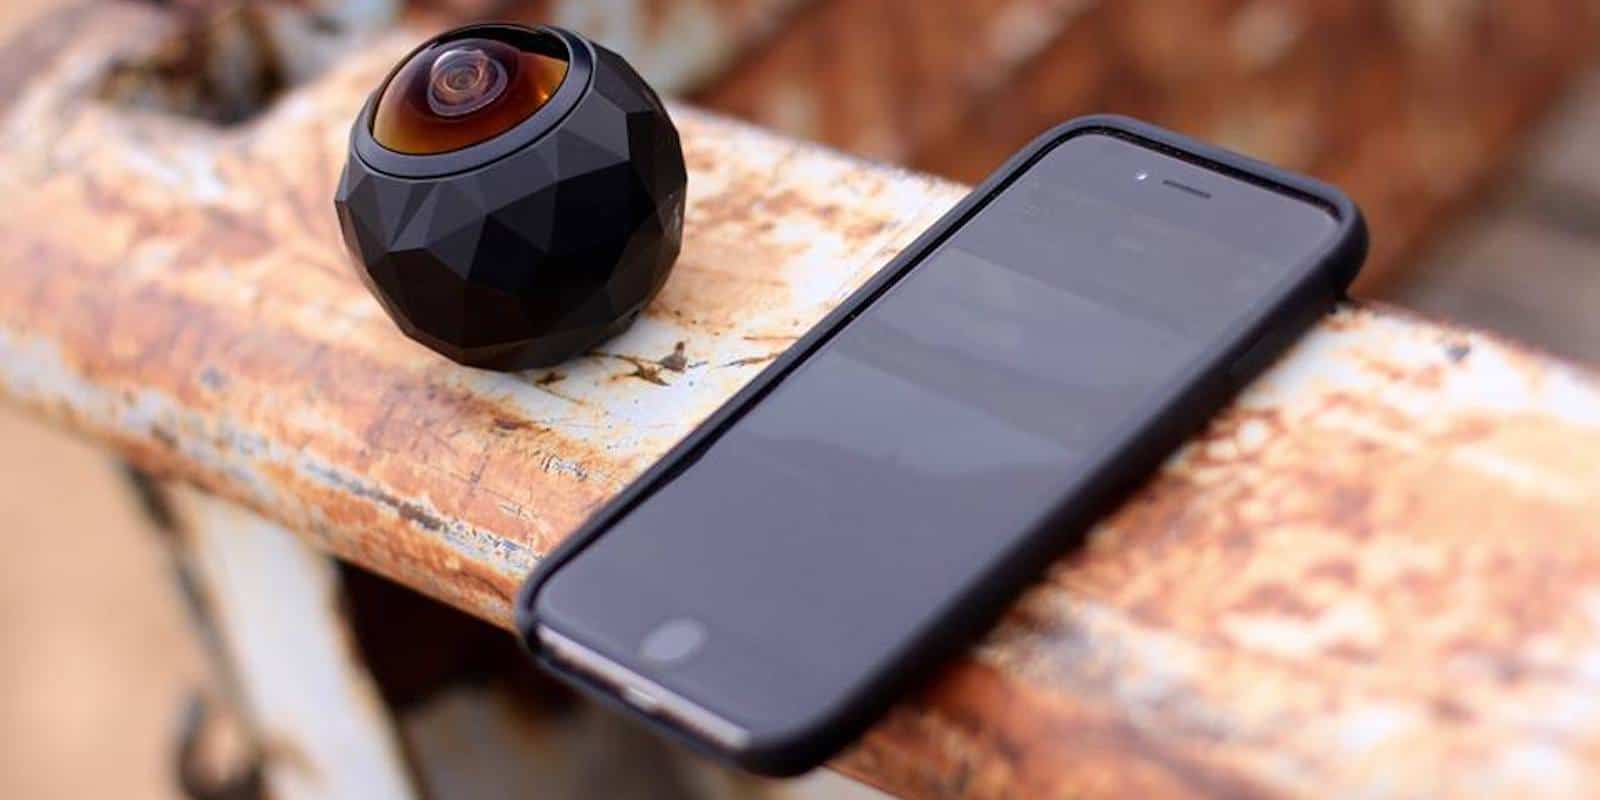 Get in on the immersive video fun with this handheld, durable 360 degree camera.